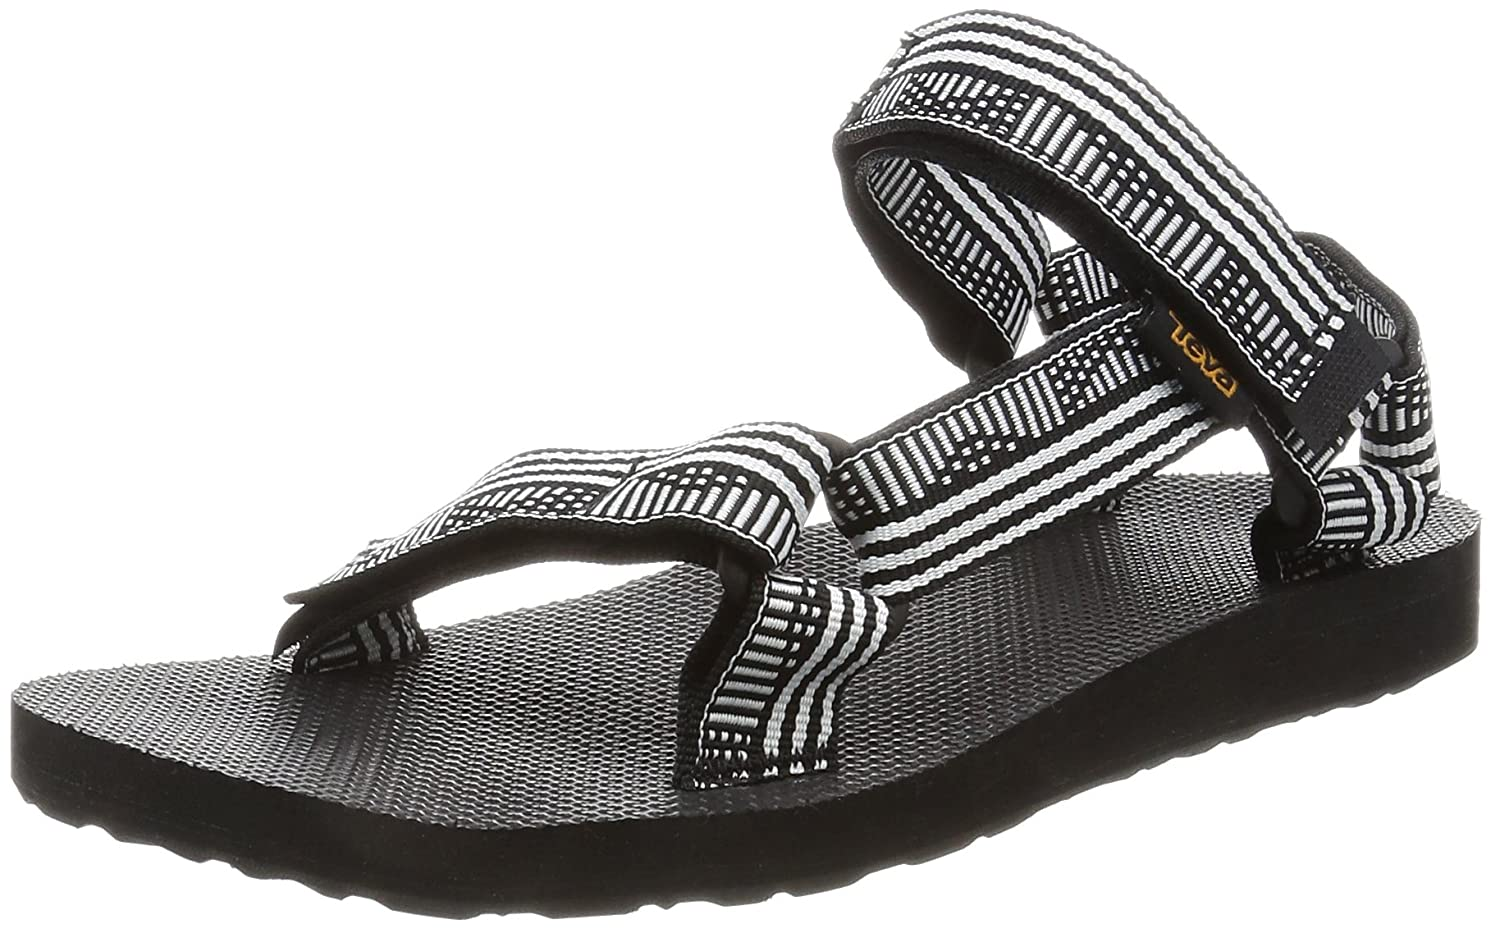 08bee15c8077 Teva Women s Original Universal Sports and Outdoor Sandal  Amazon.co.uk   Shoes   Bags